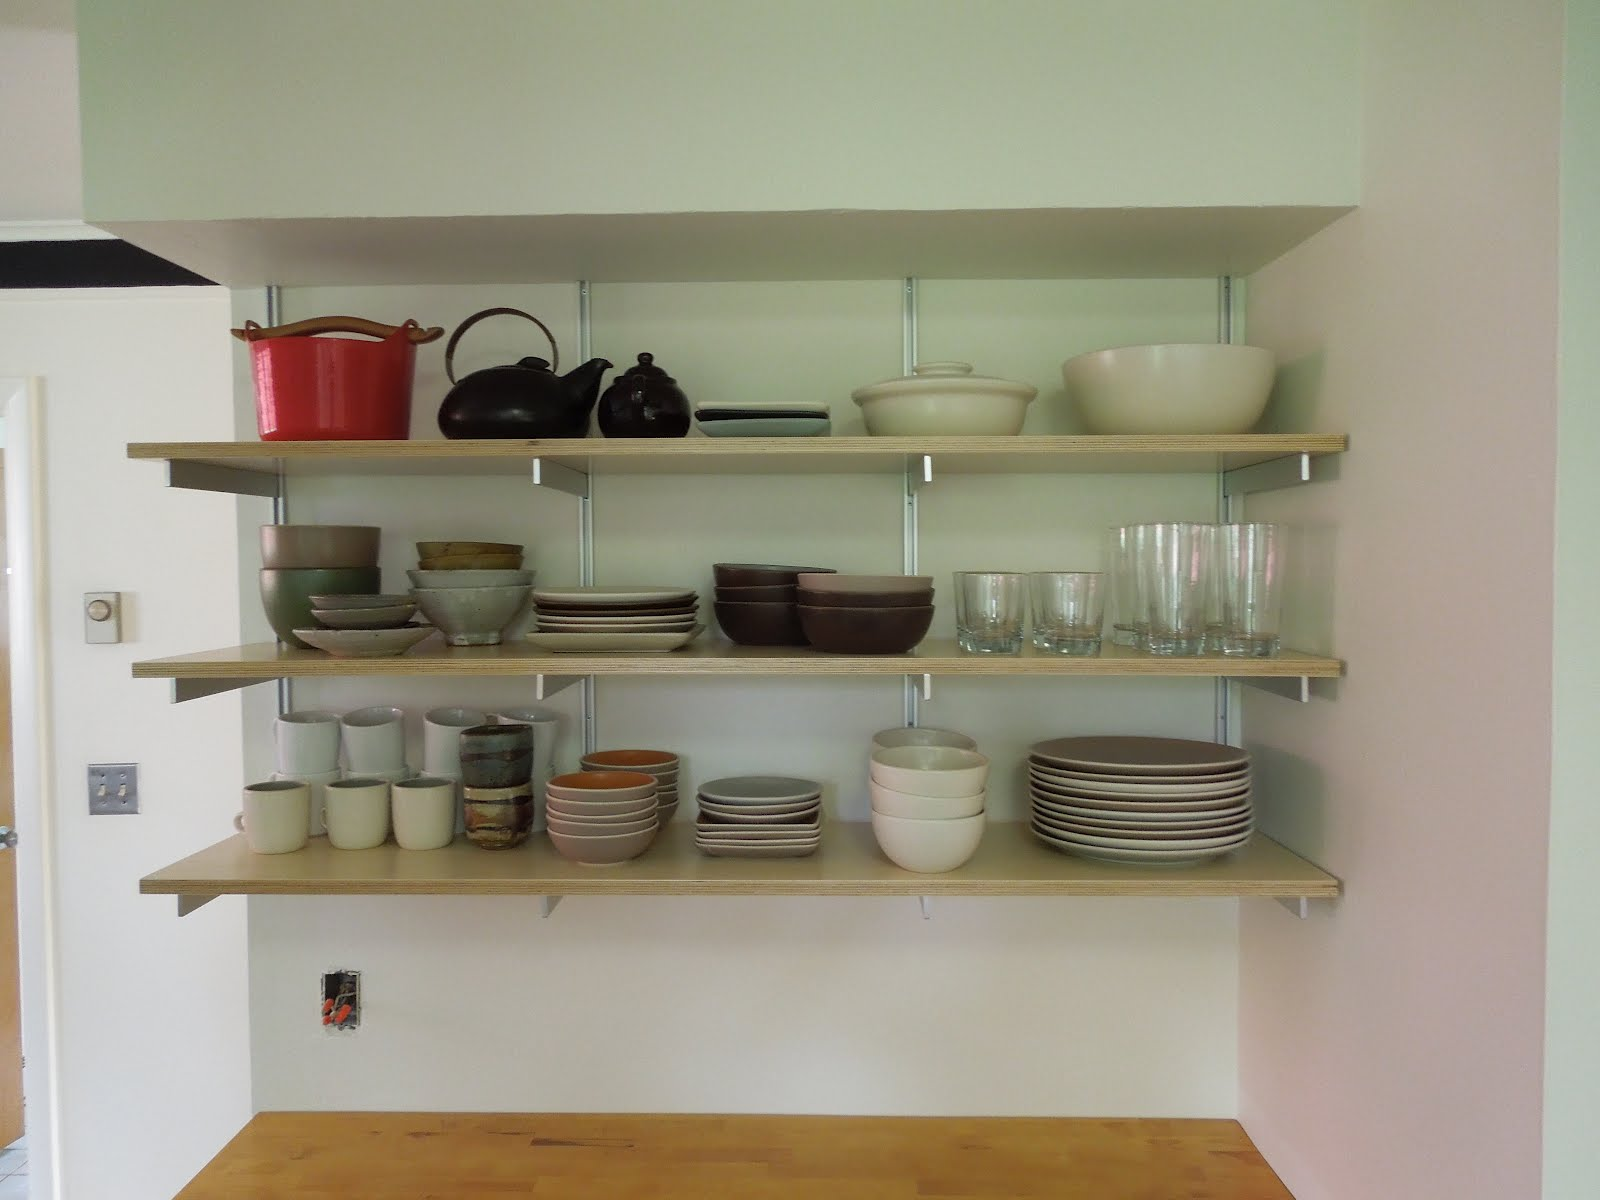 Toys and techniques kitchen shelves for Shelving in kitchen